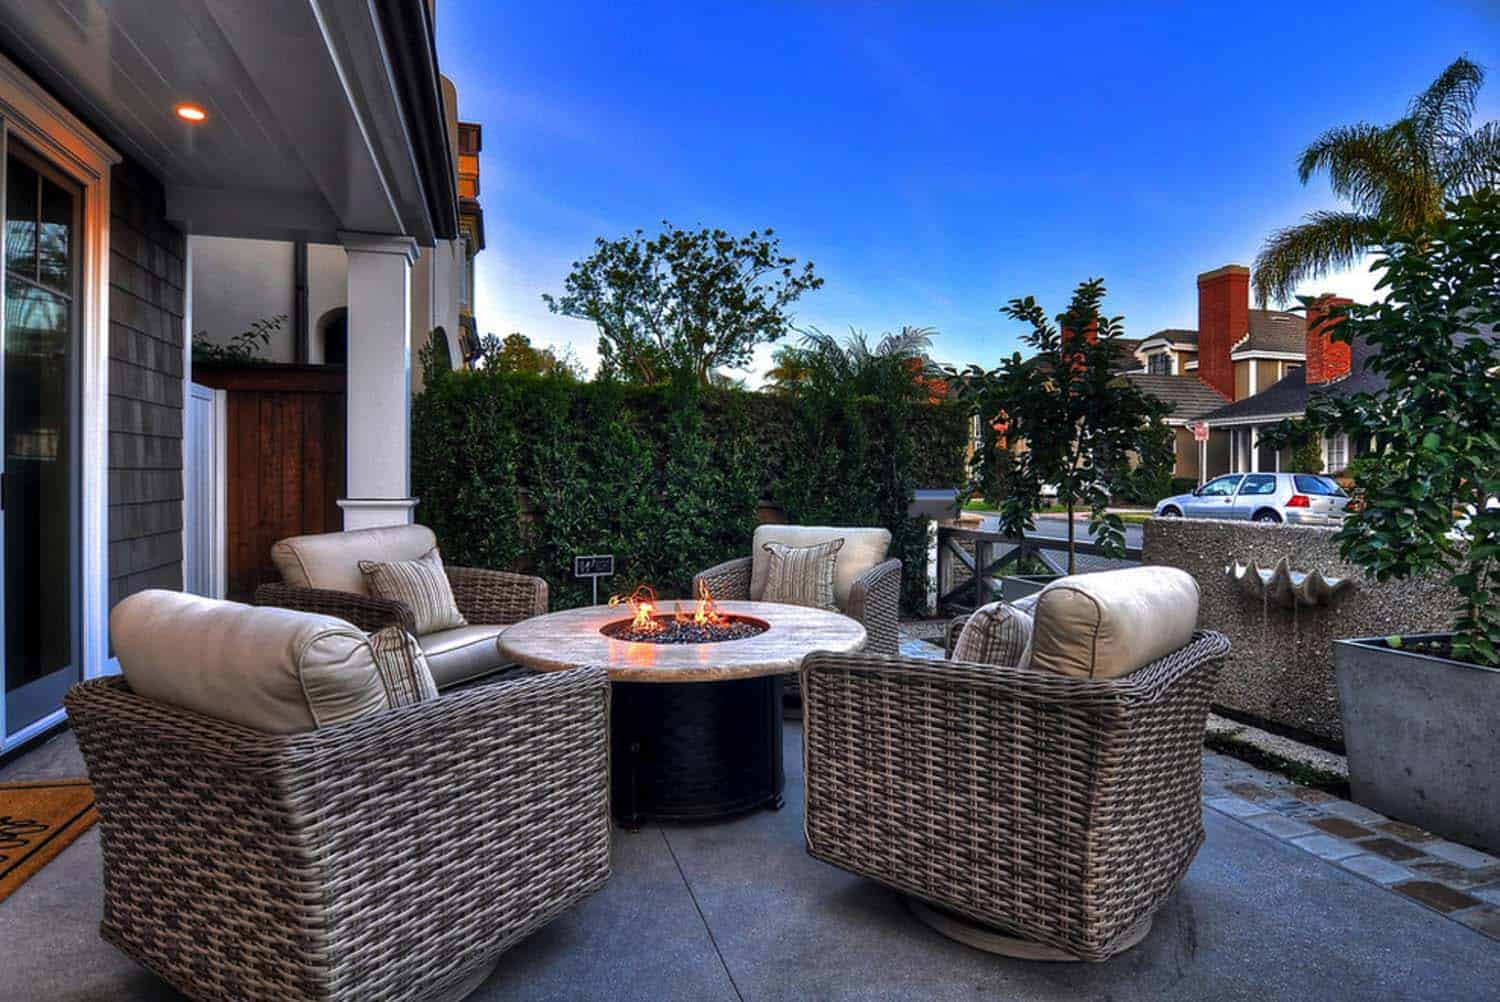 coastal-home-traditional-styling-patio